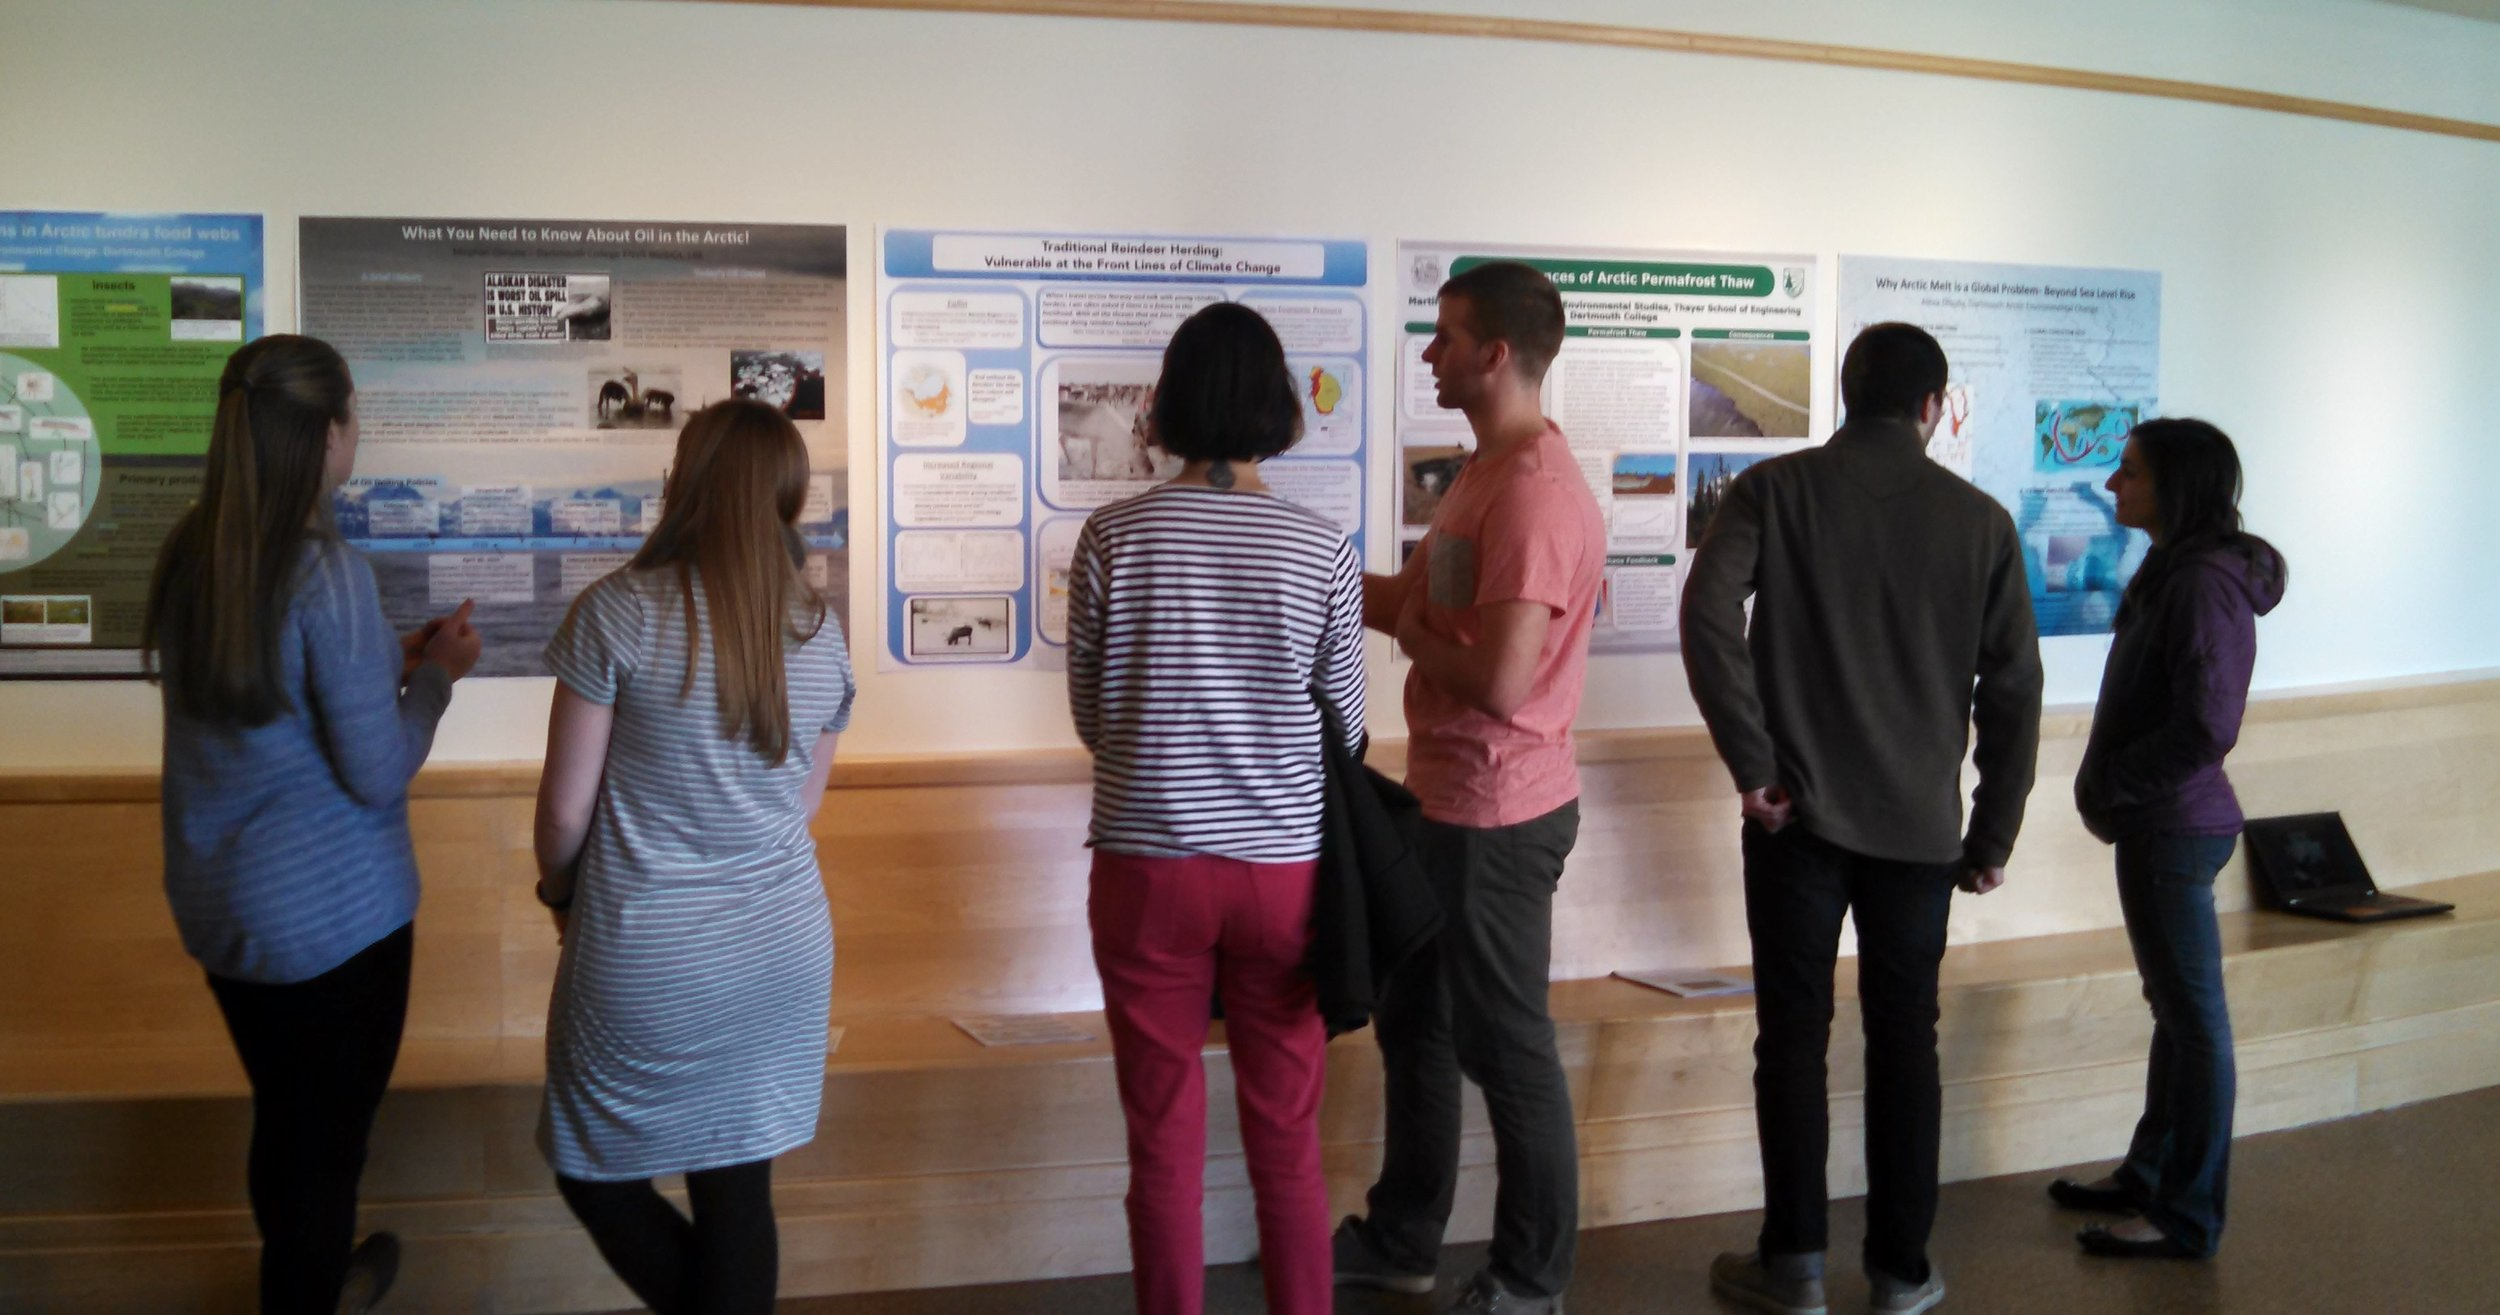 Students in ENVS80 Arctic Environmental Change present their culminating projects to the Dartmouth community during a poster session in the Russo Gallery, March 2016.